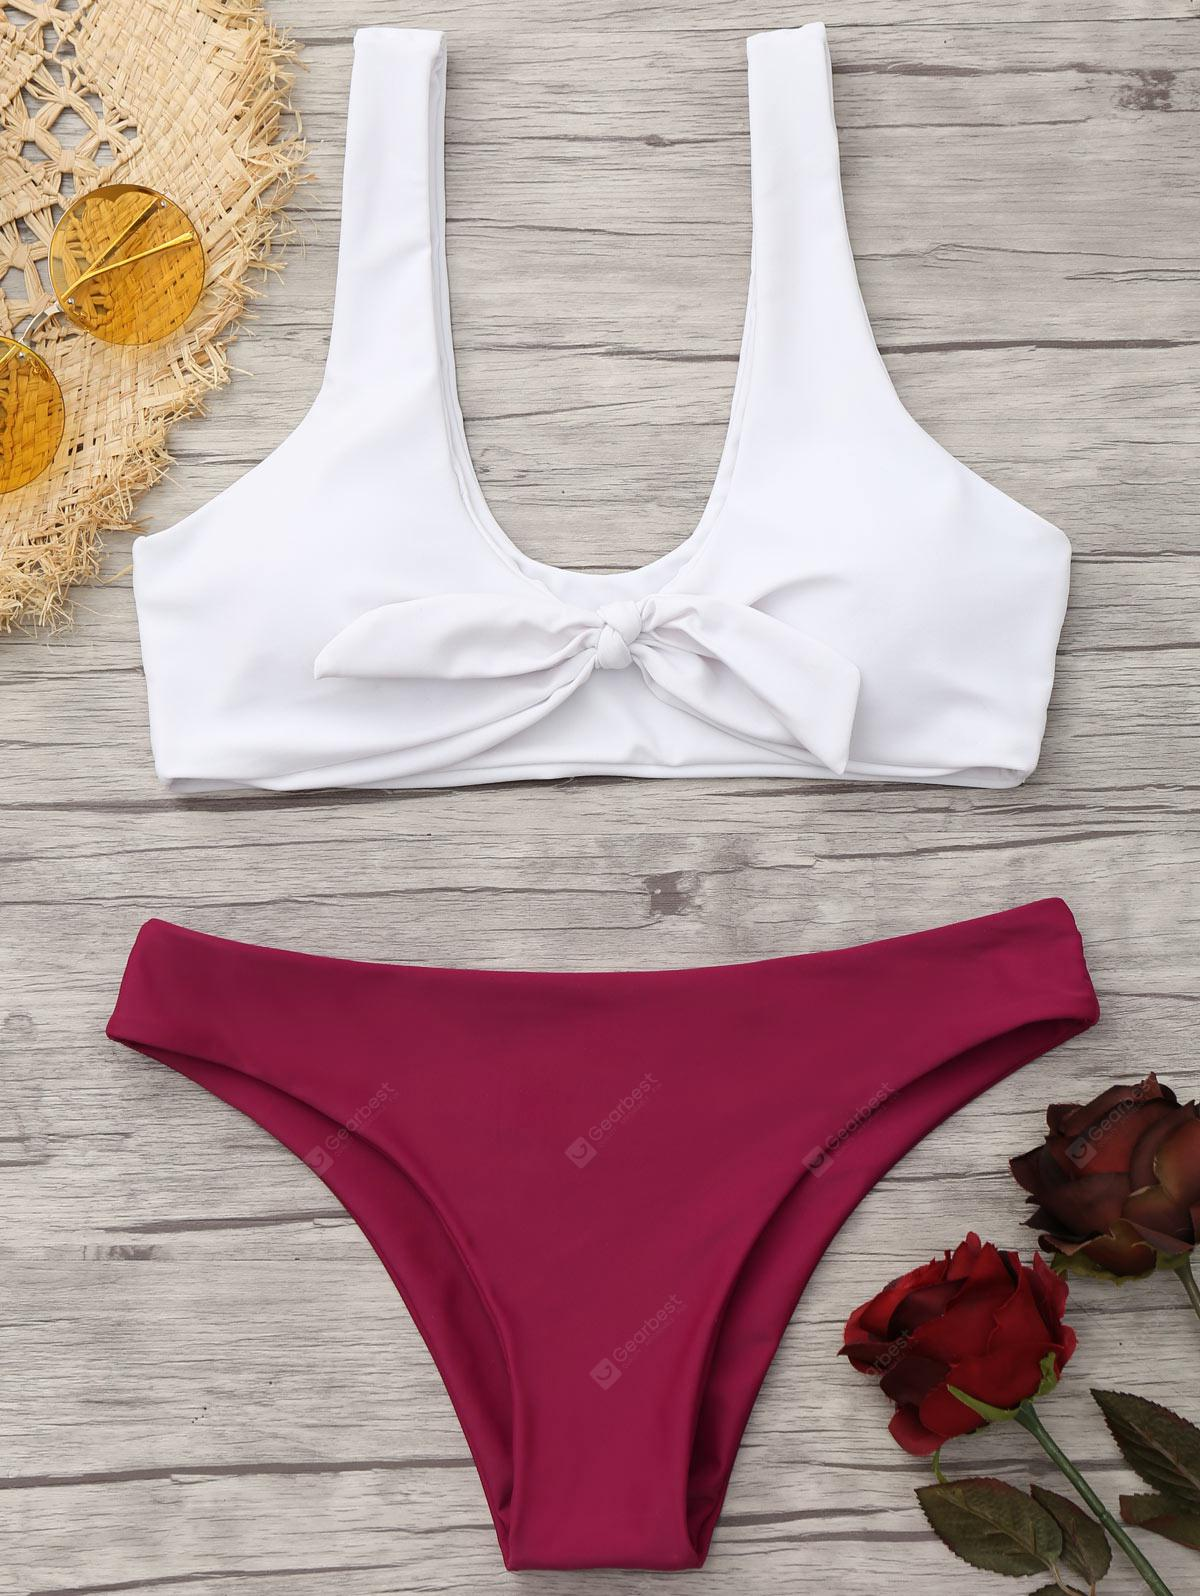 Knotted Bralette Bikini Top and Bottoms